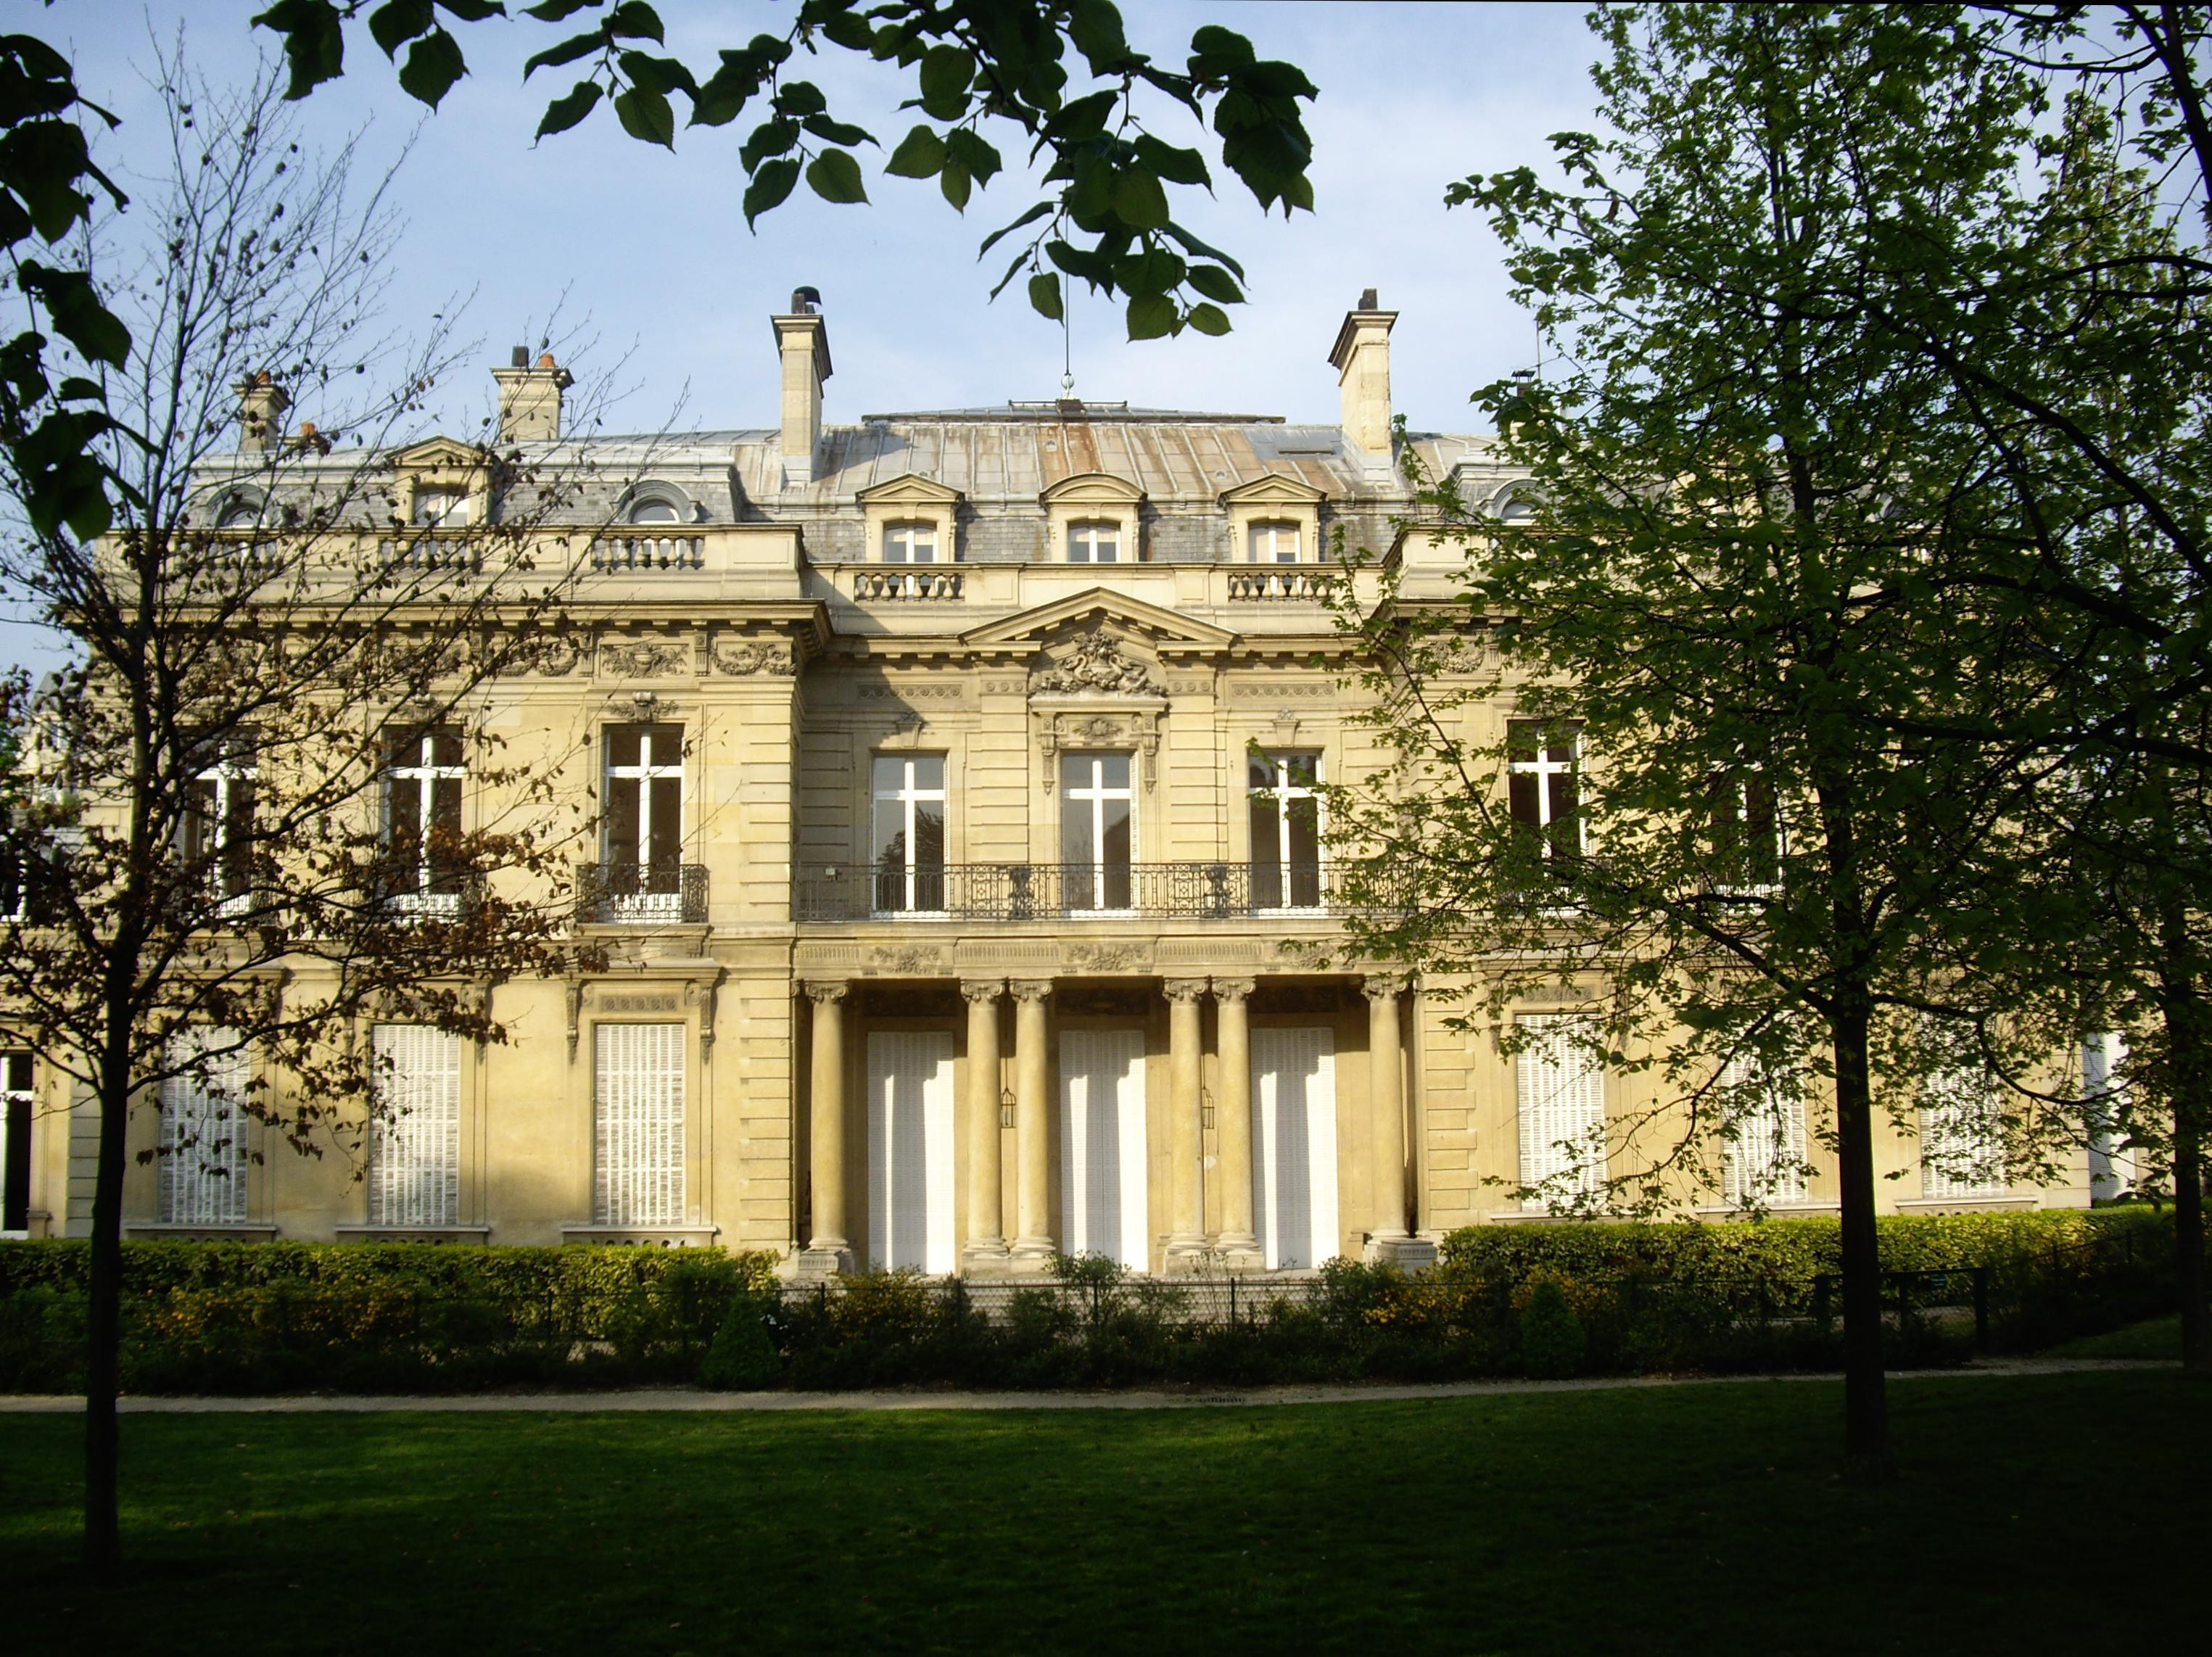 Hôtel Salomon de Rothschild - Centre national de la photographie